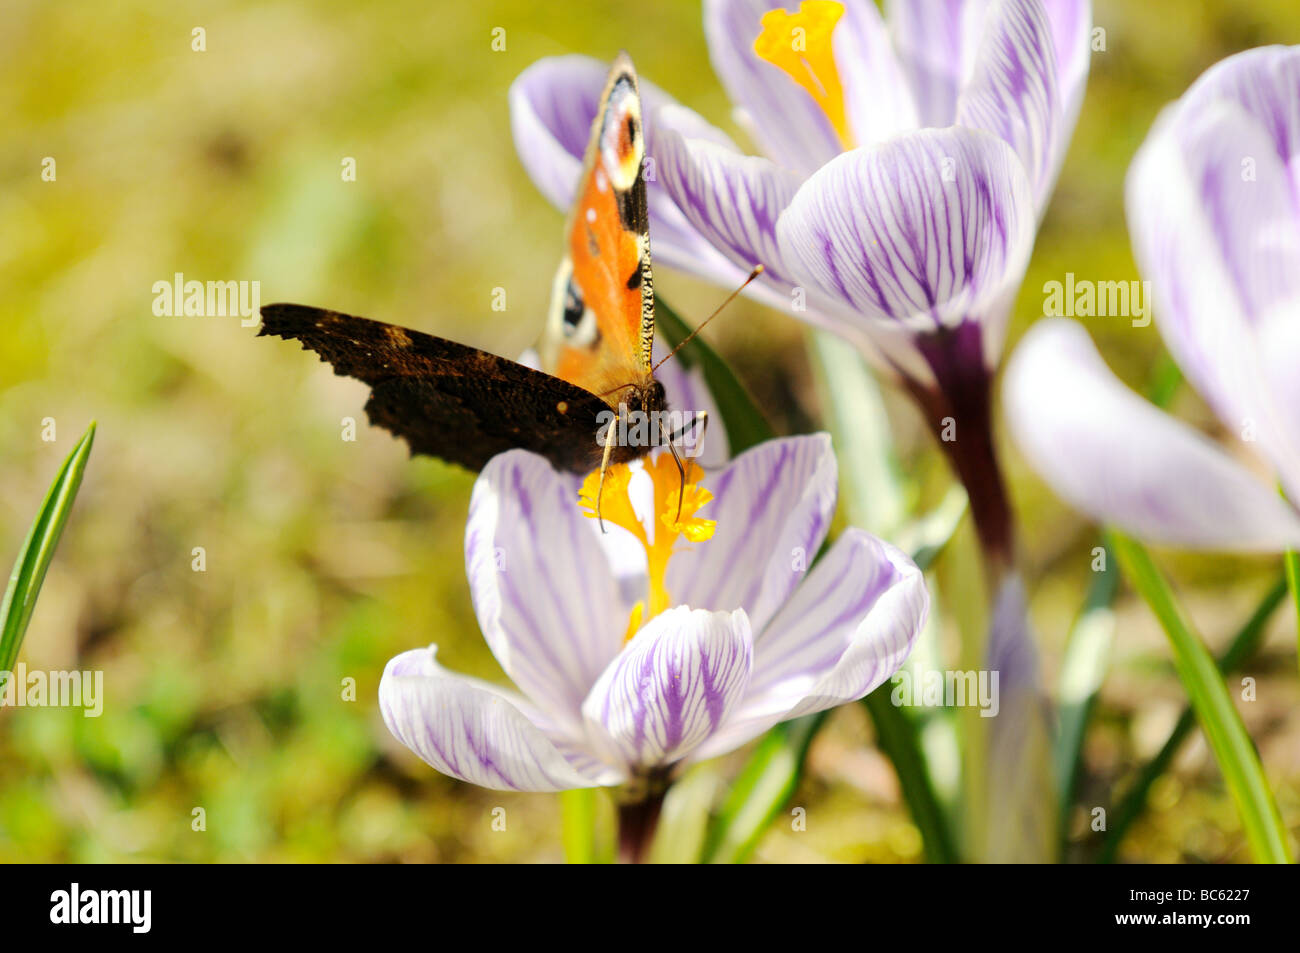 http://c8.alamy.com/comp/BC6227/close-up-of-peacock-butterfly-pollinating-crocus-flower-in-field-franconia-BC6227.jpg